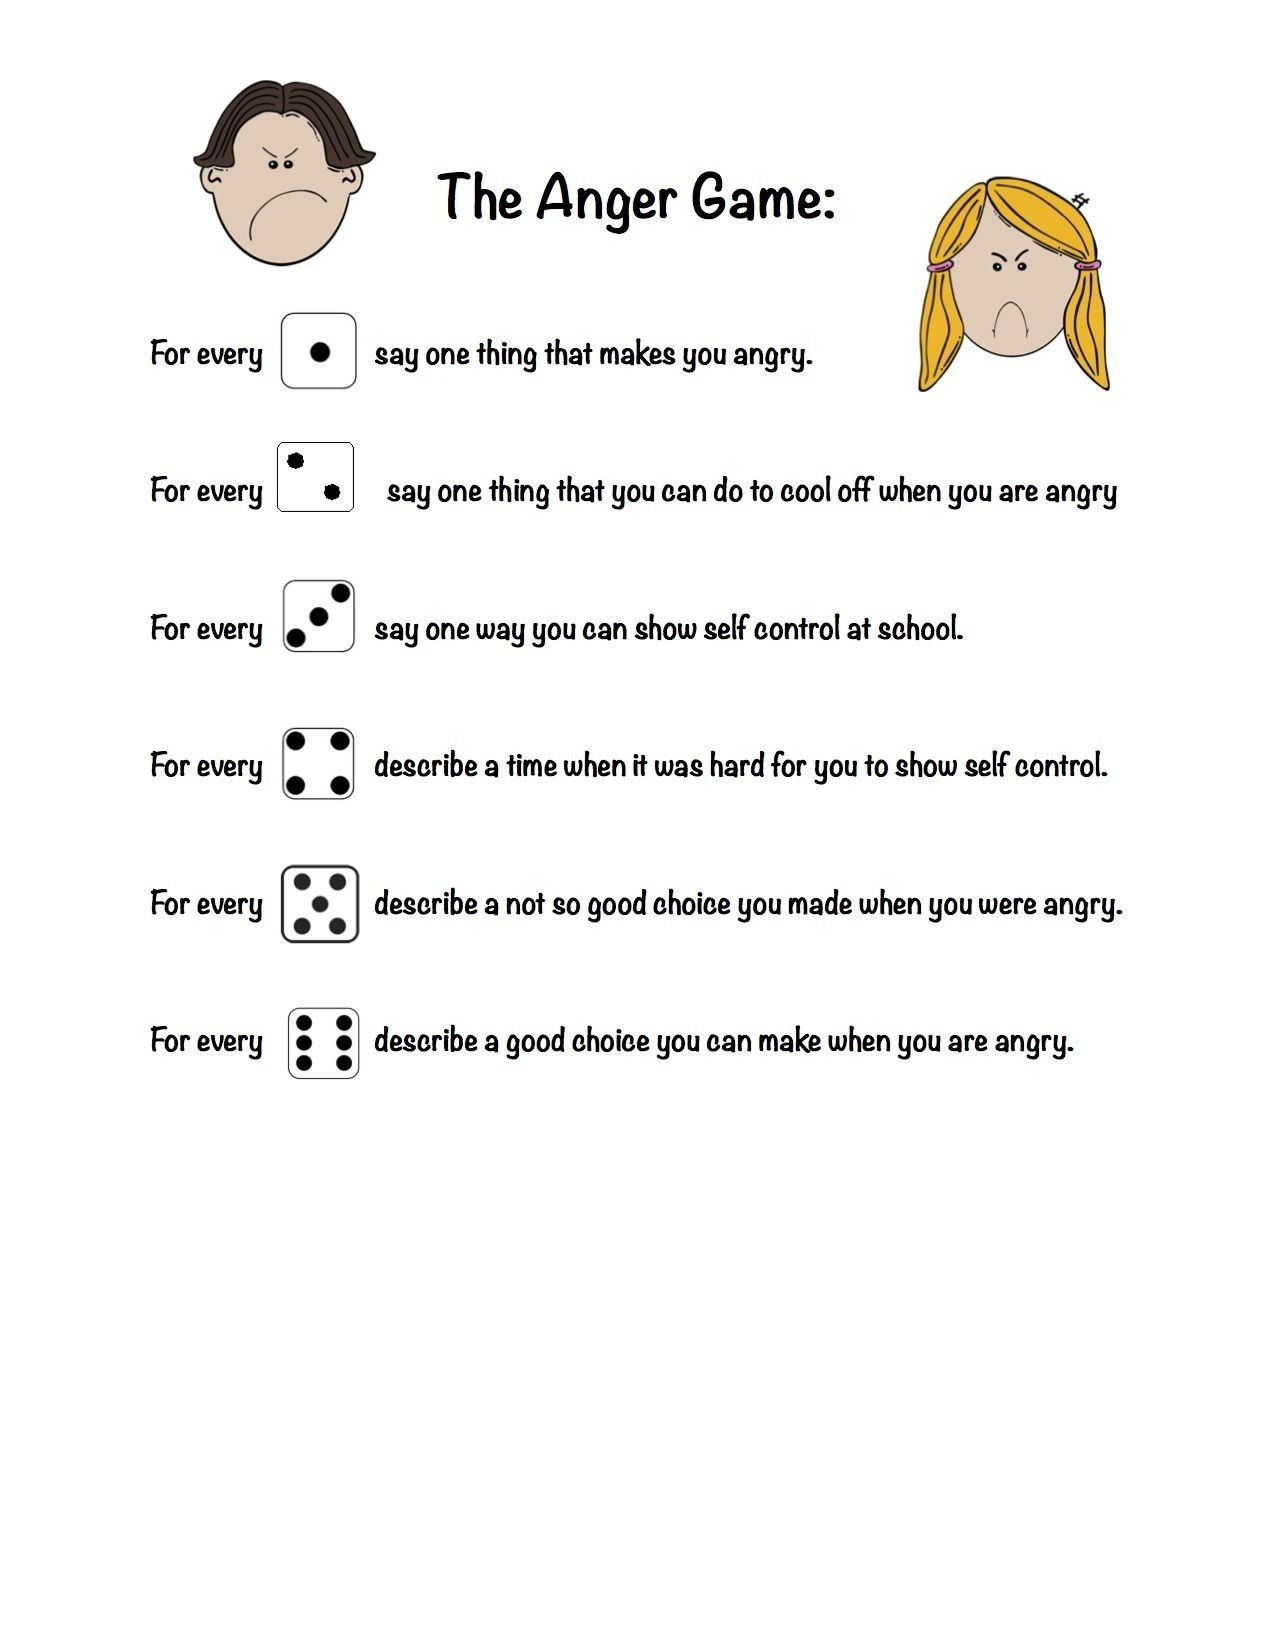 10 Elegant Group Therapy Ideas For Mental Health the anger game used with one dice and helpful for kids working on 2020